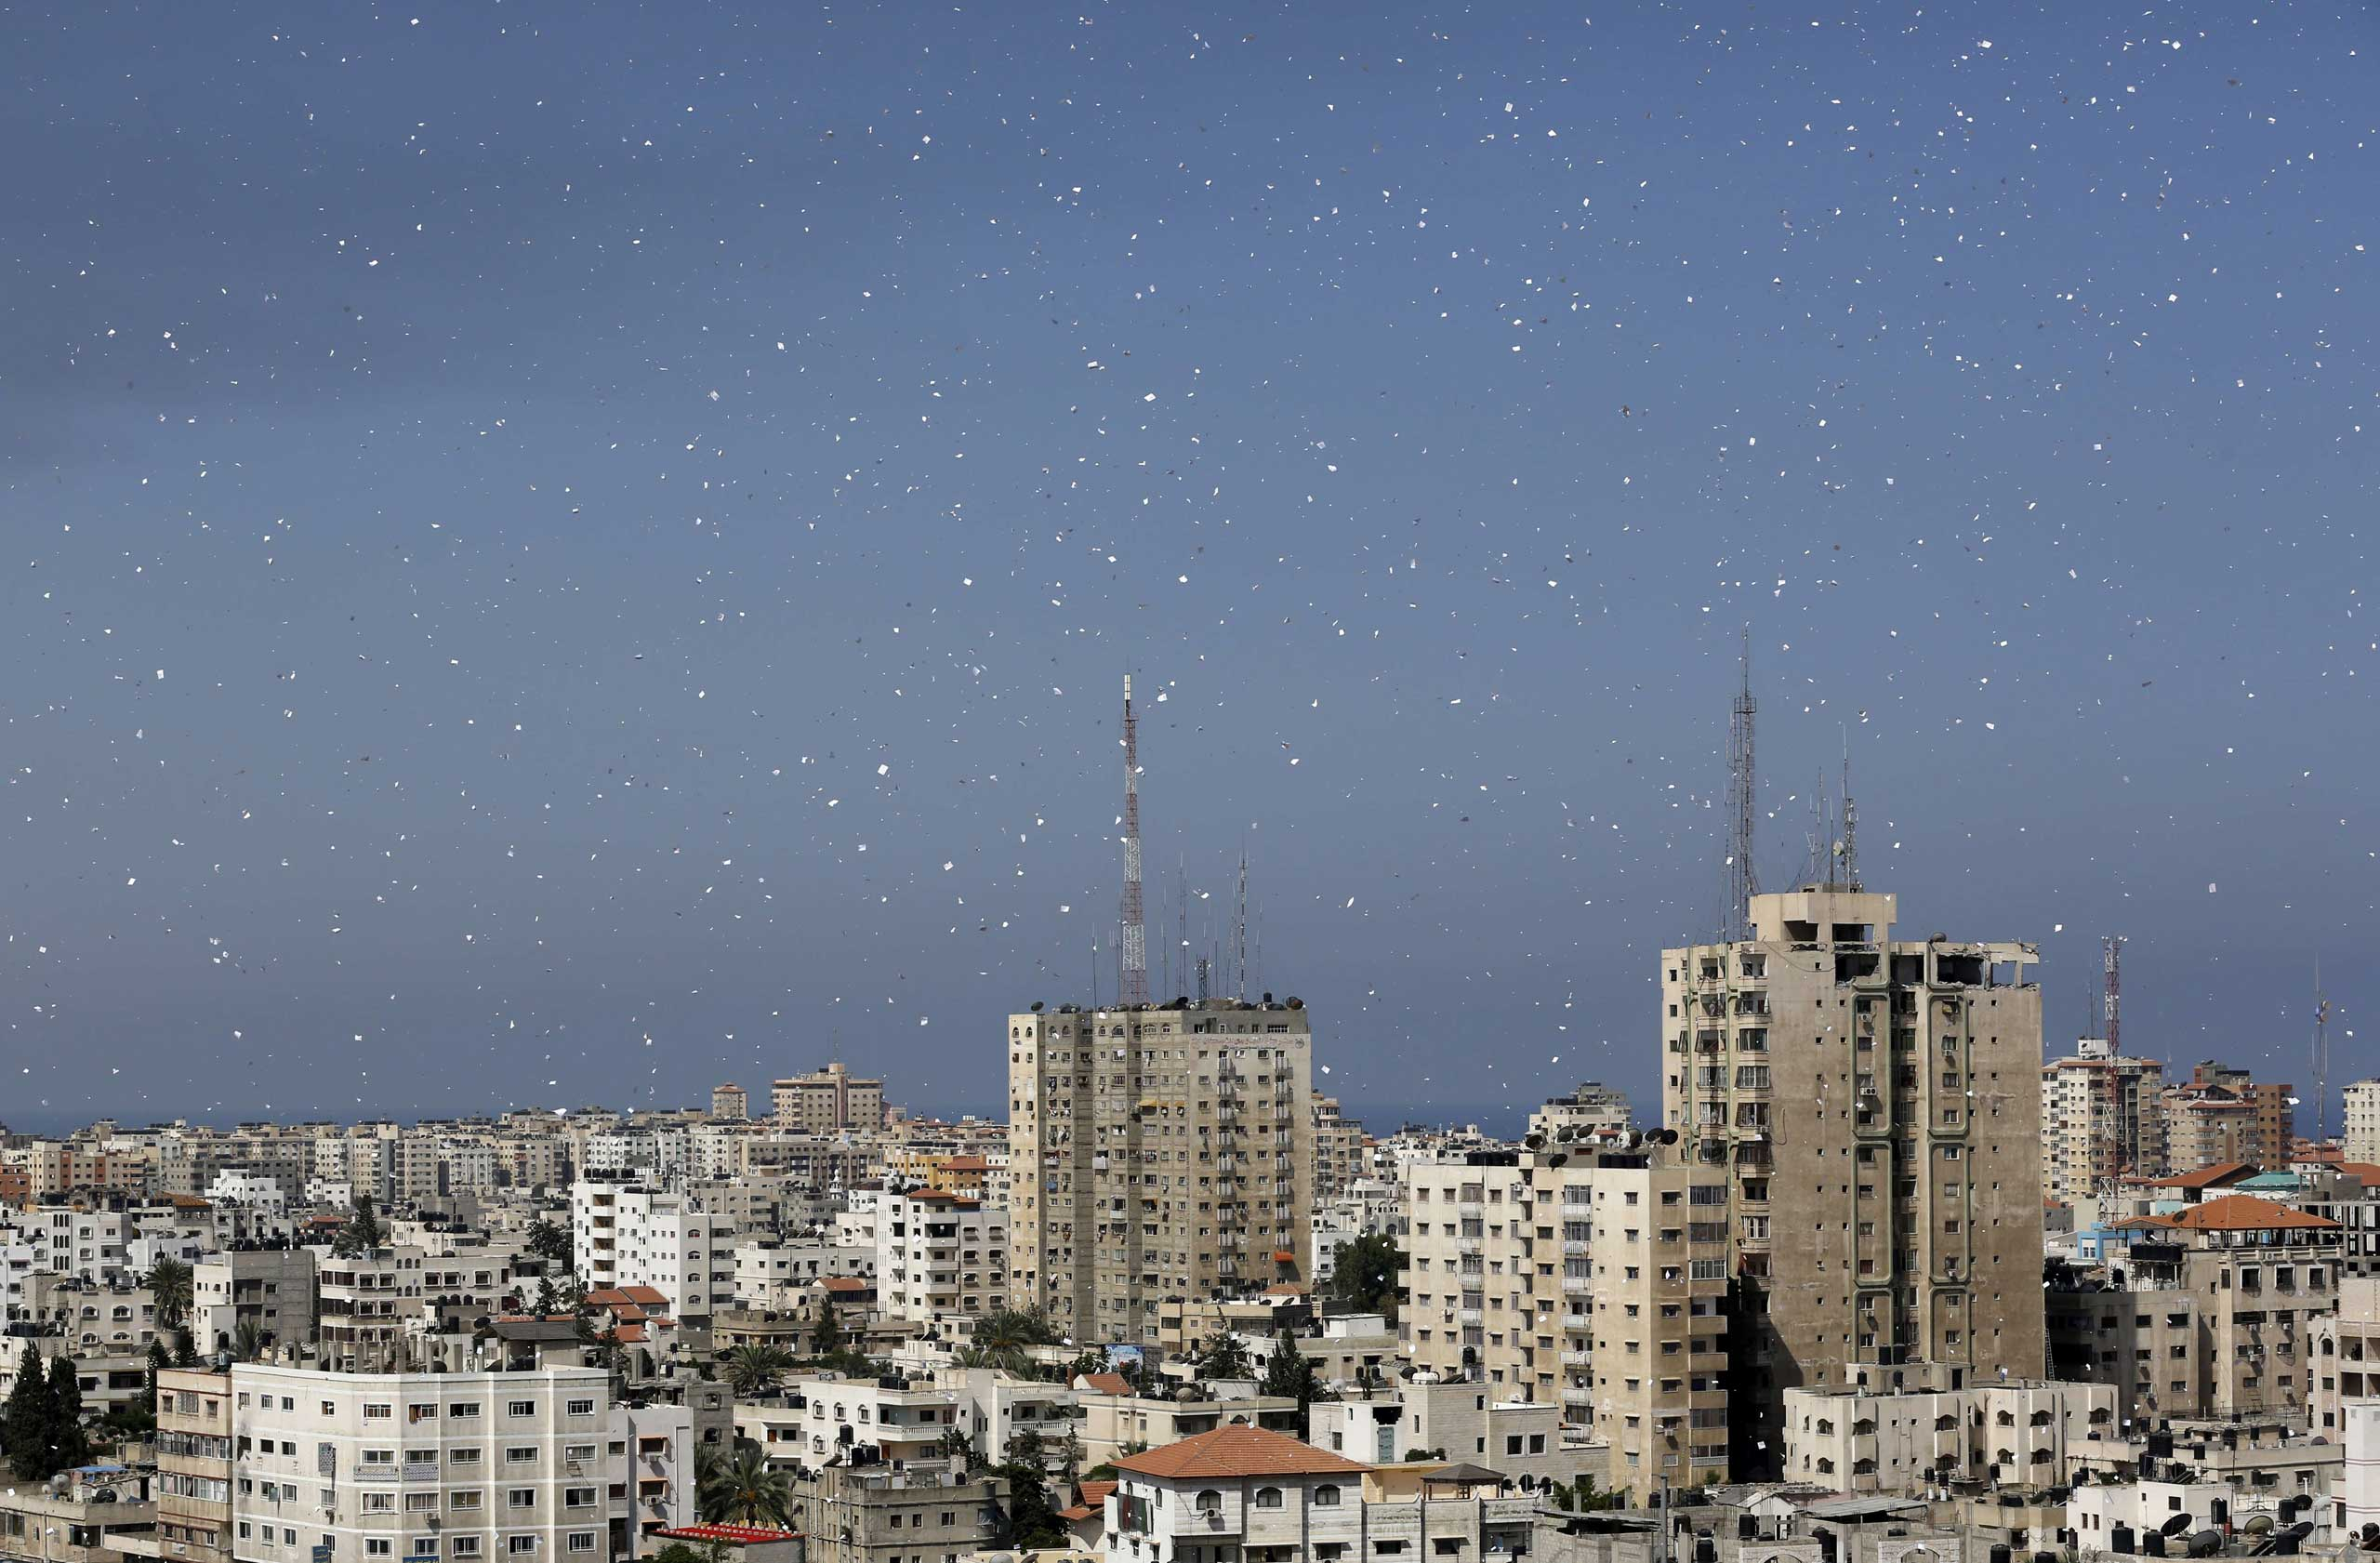 Flyers are dropped over Gaza City by the Israeli army urging residents to evacuate their homes, July 30, 2014.